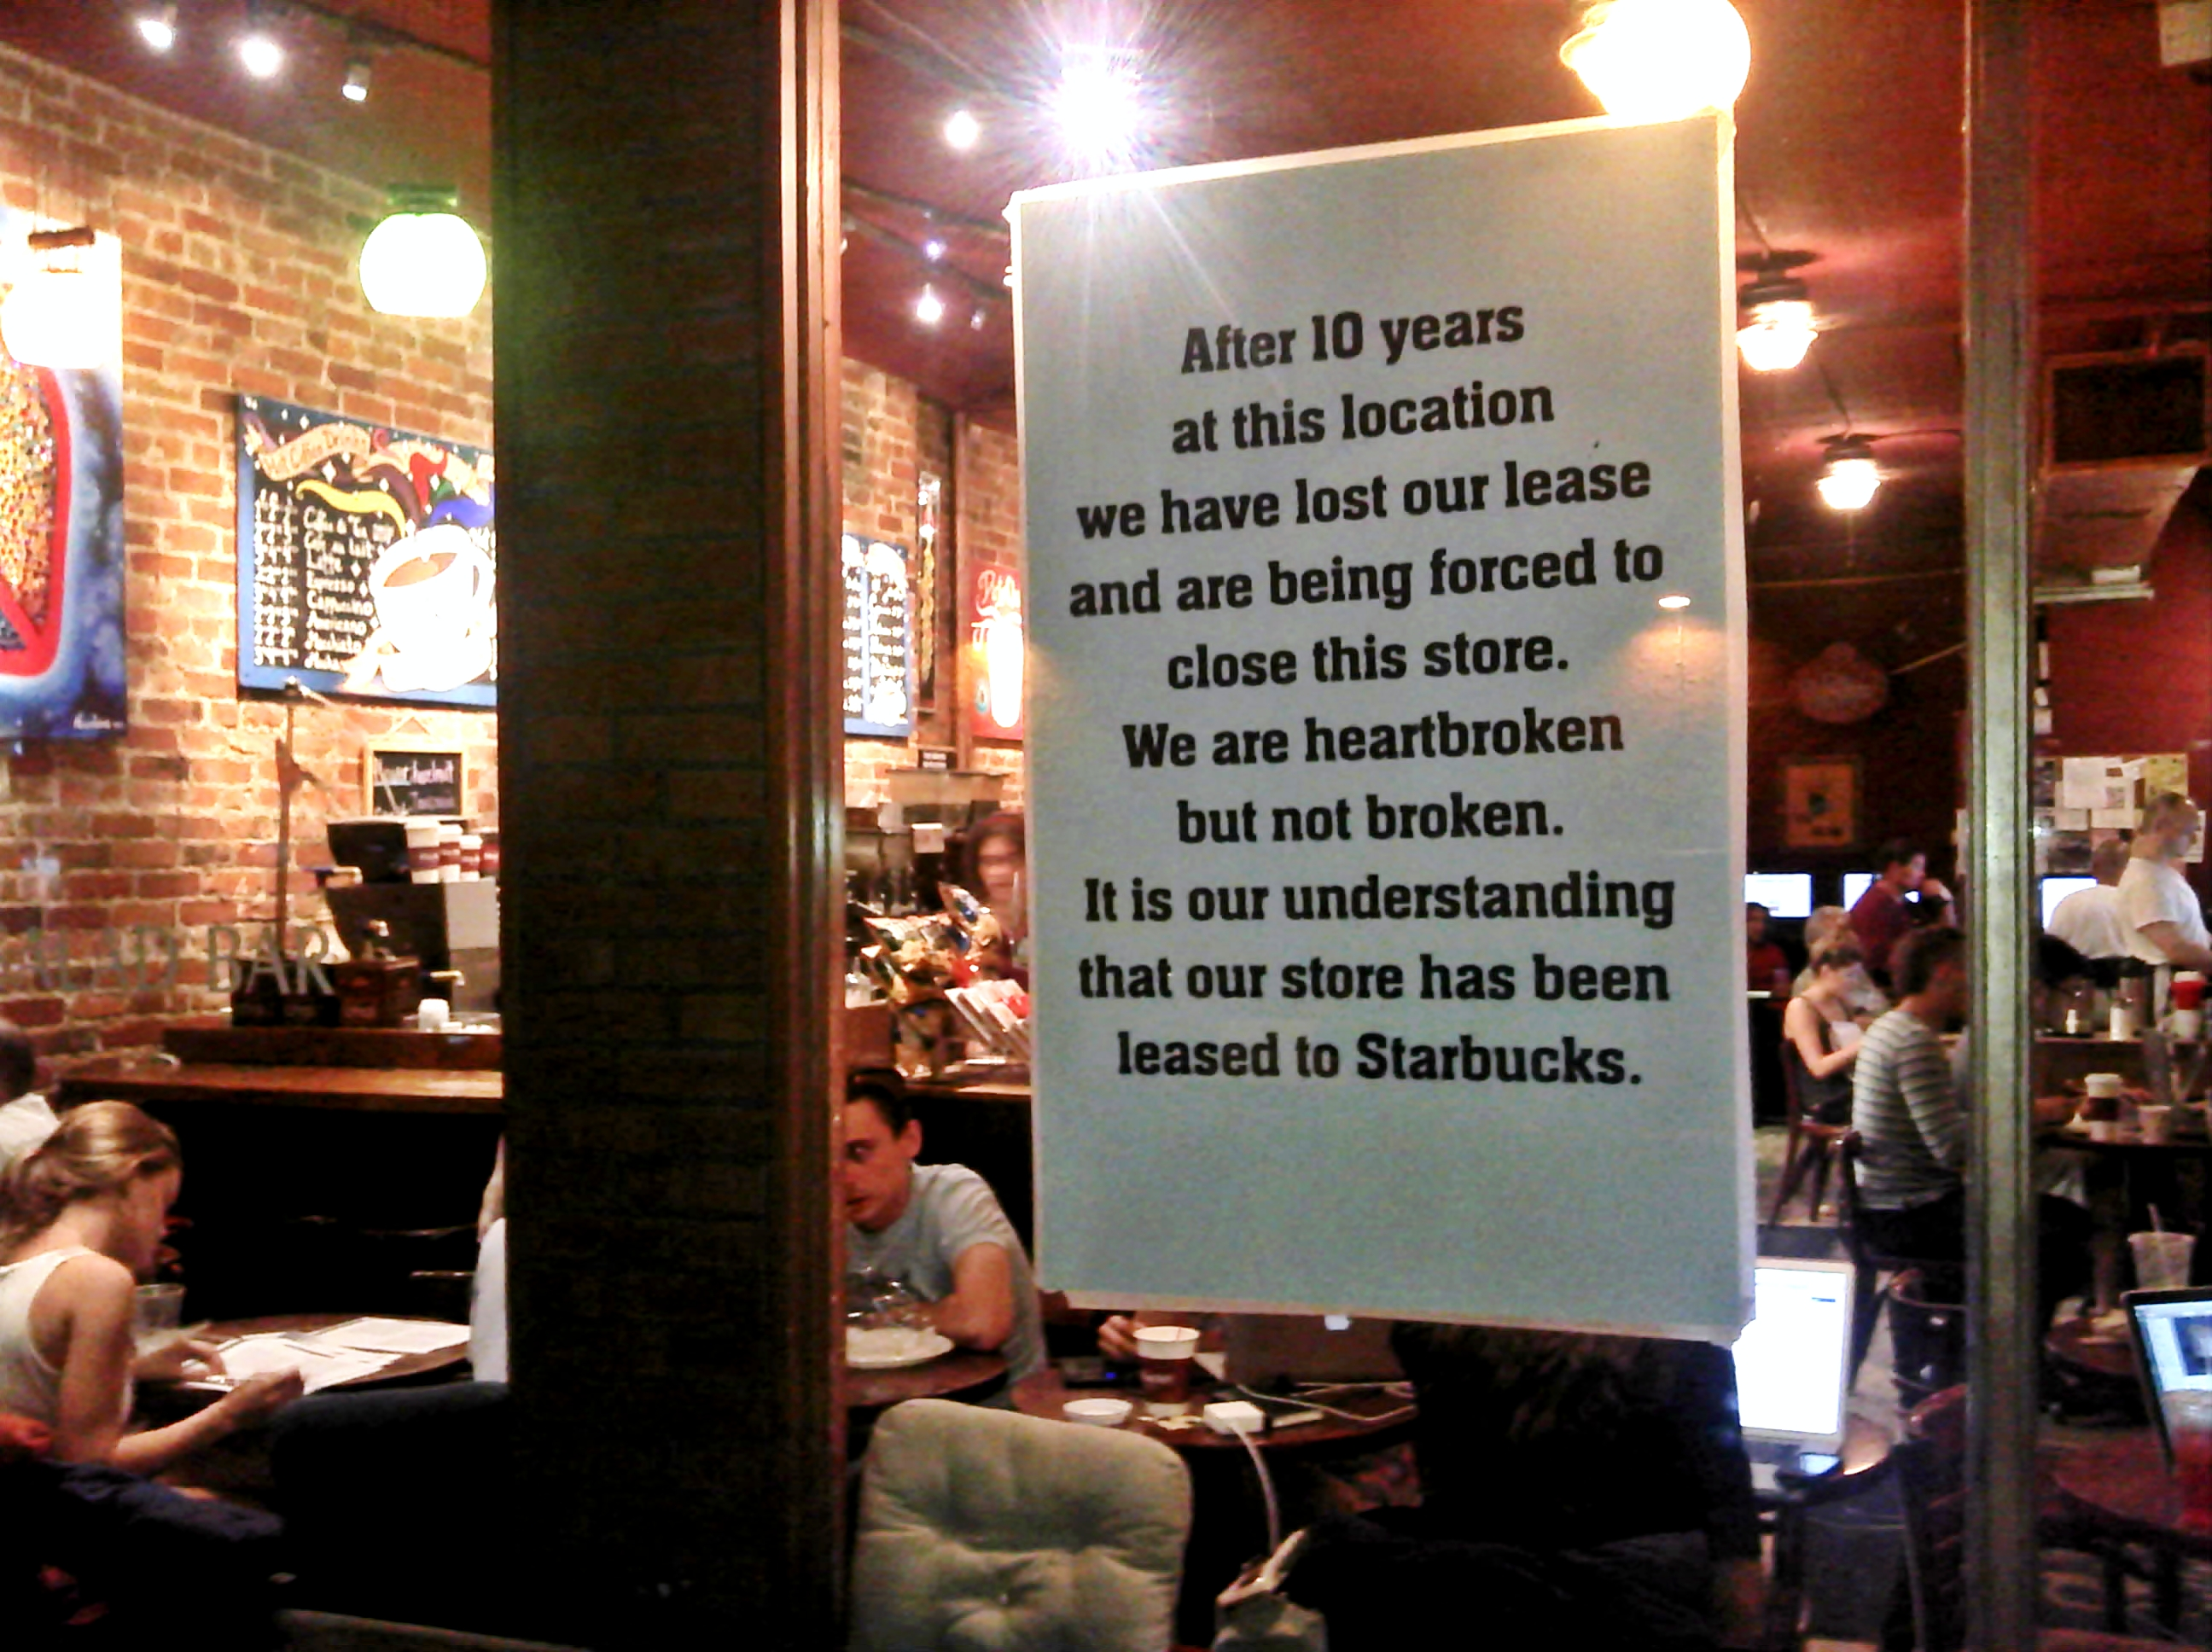 A local coffee shop in New York's East Village claiming it had to close because Starbucks is willing to pay higher rent for the space